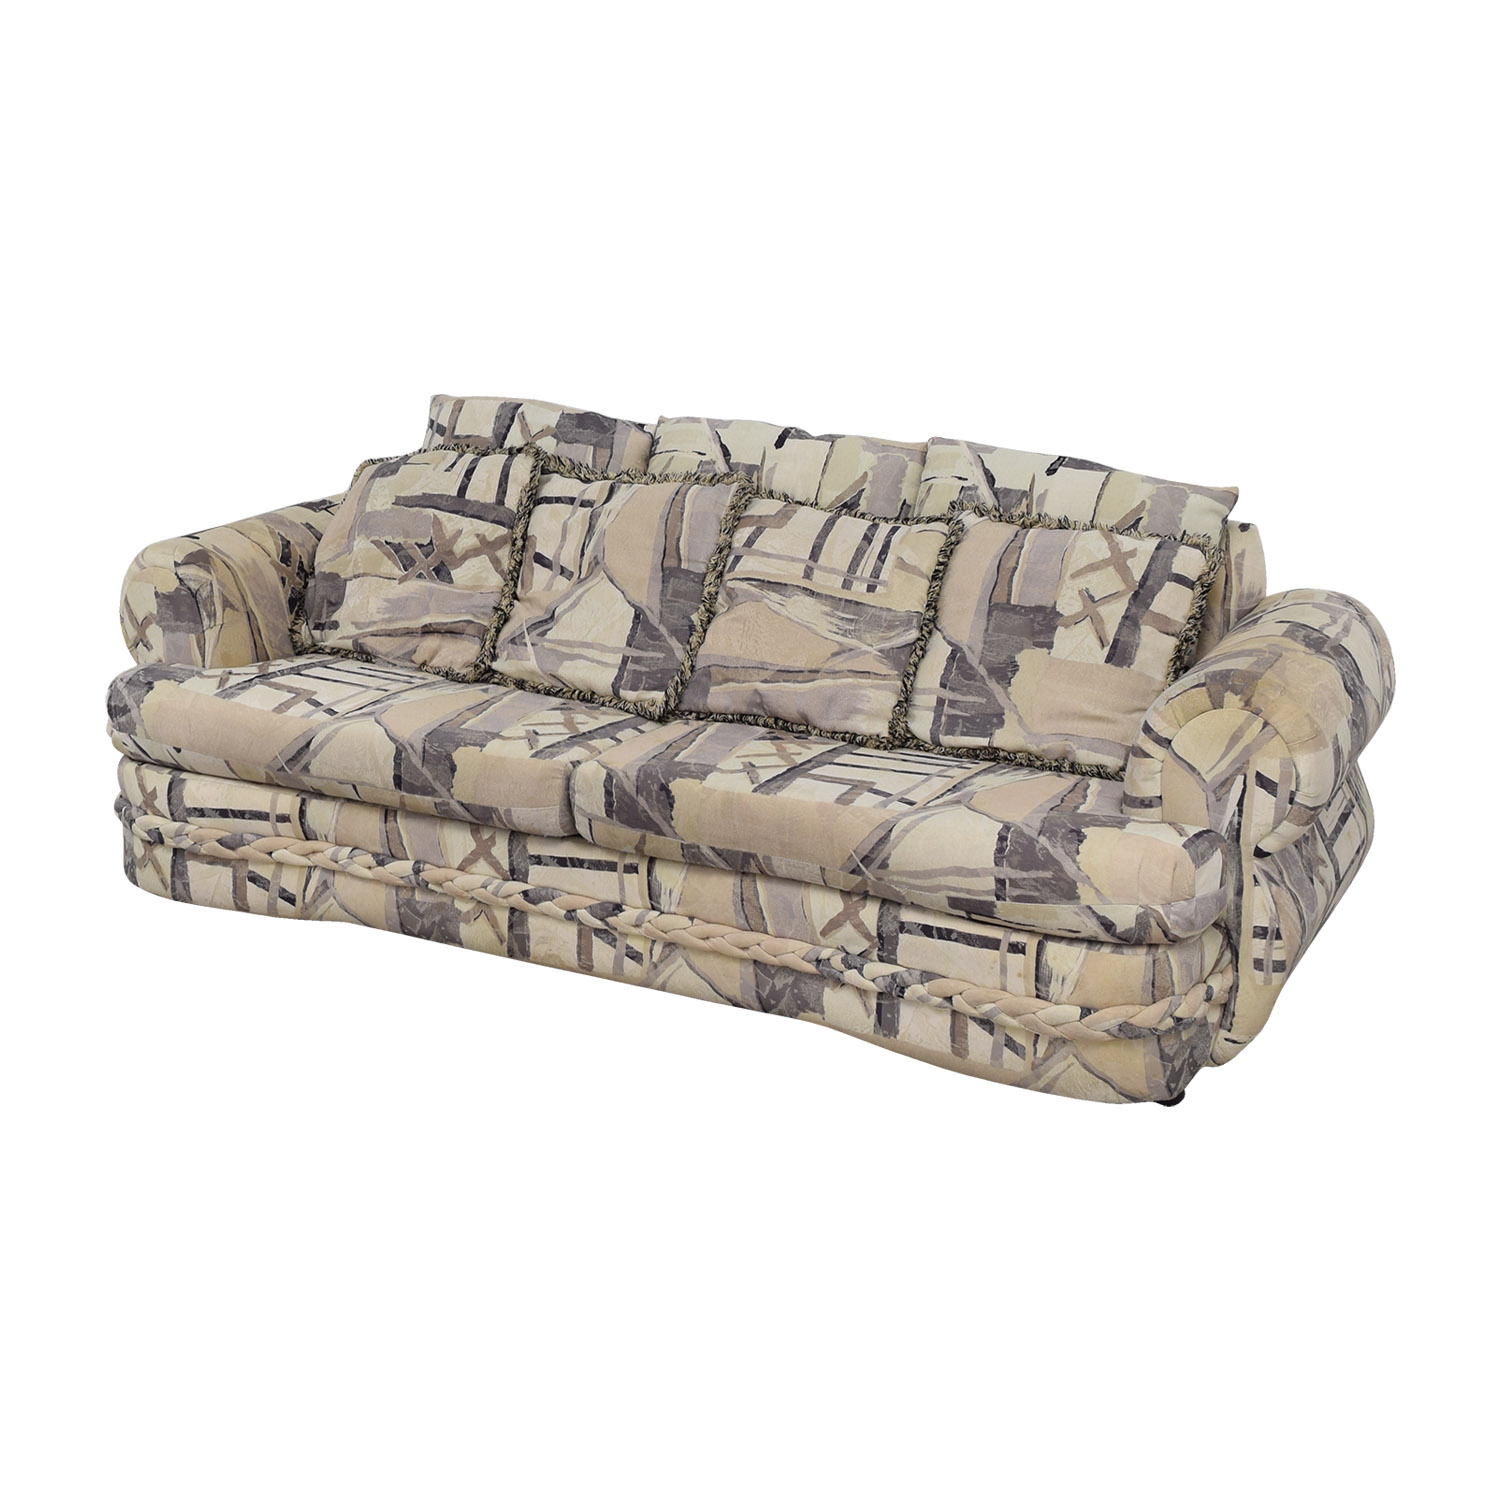 buy White Multi-Colored Two-Cushion Couch online